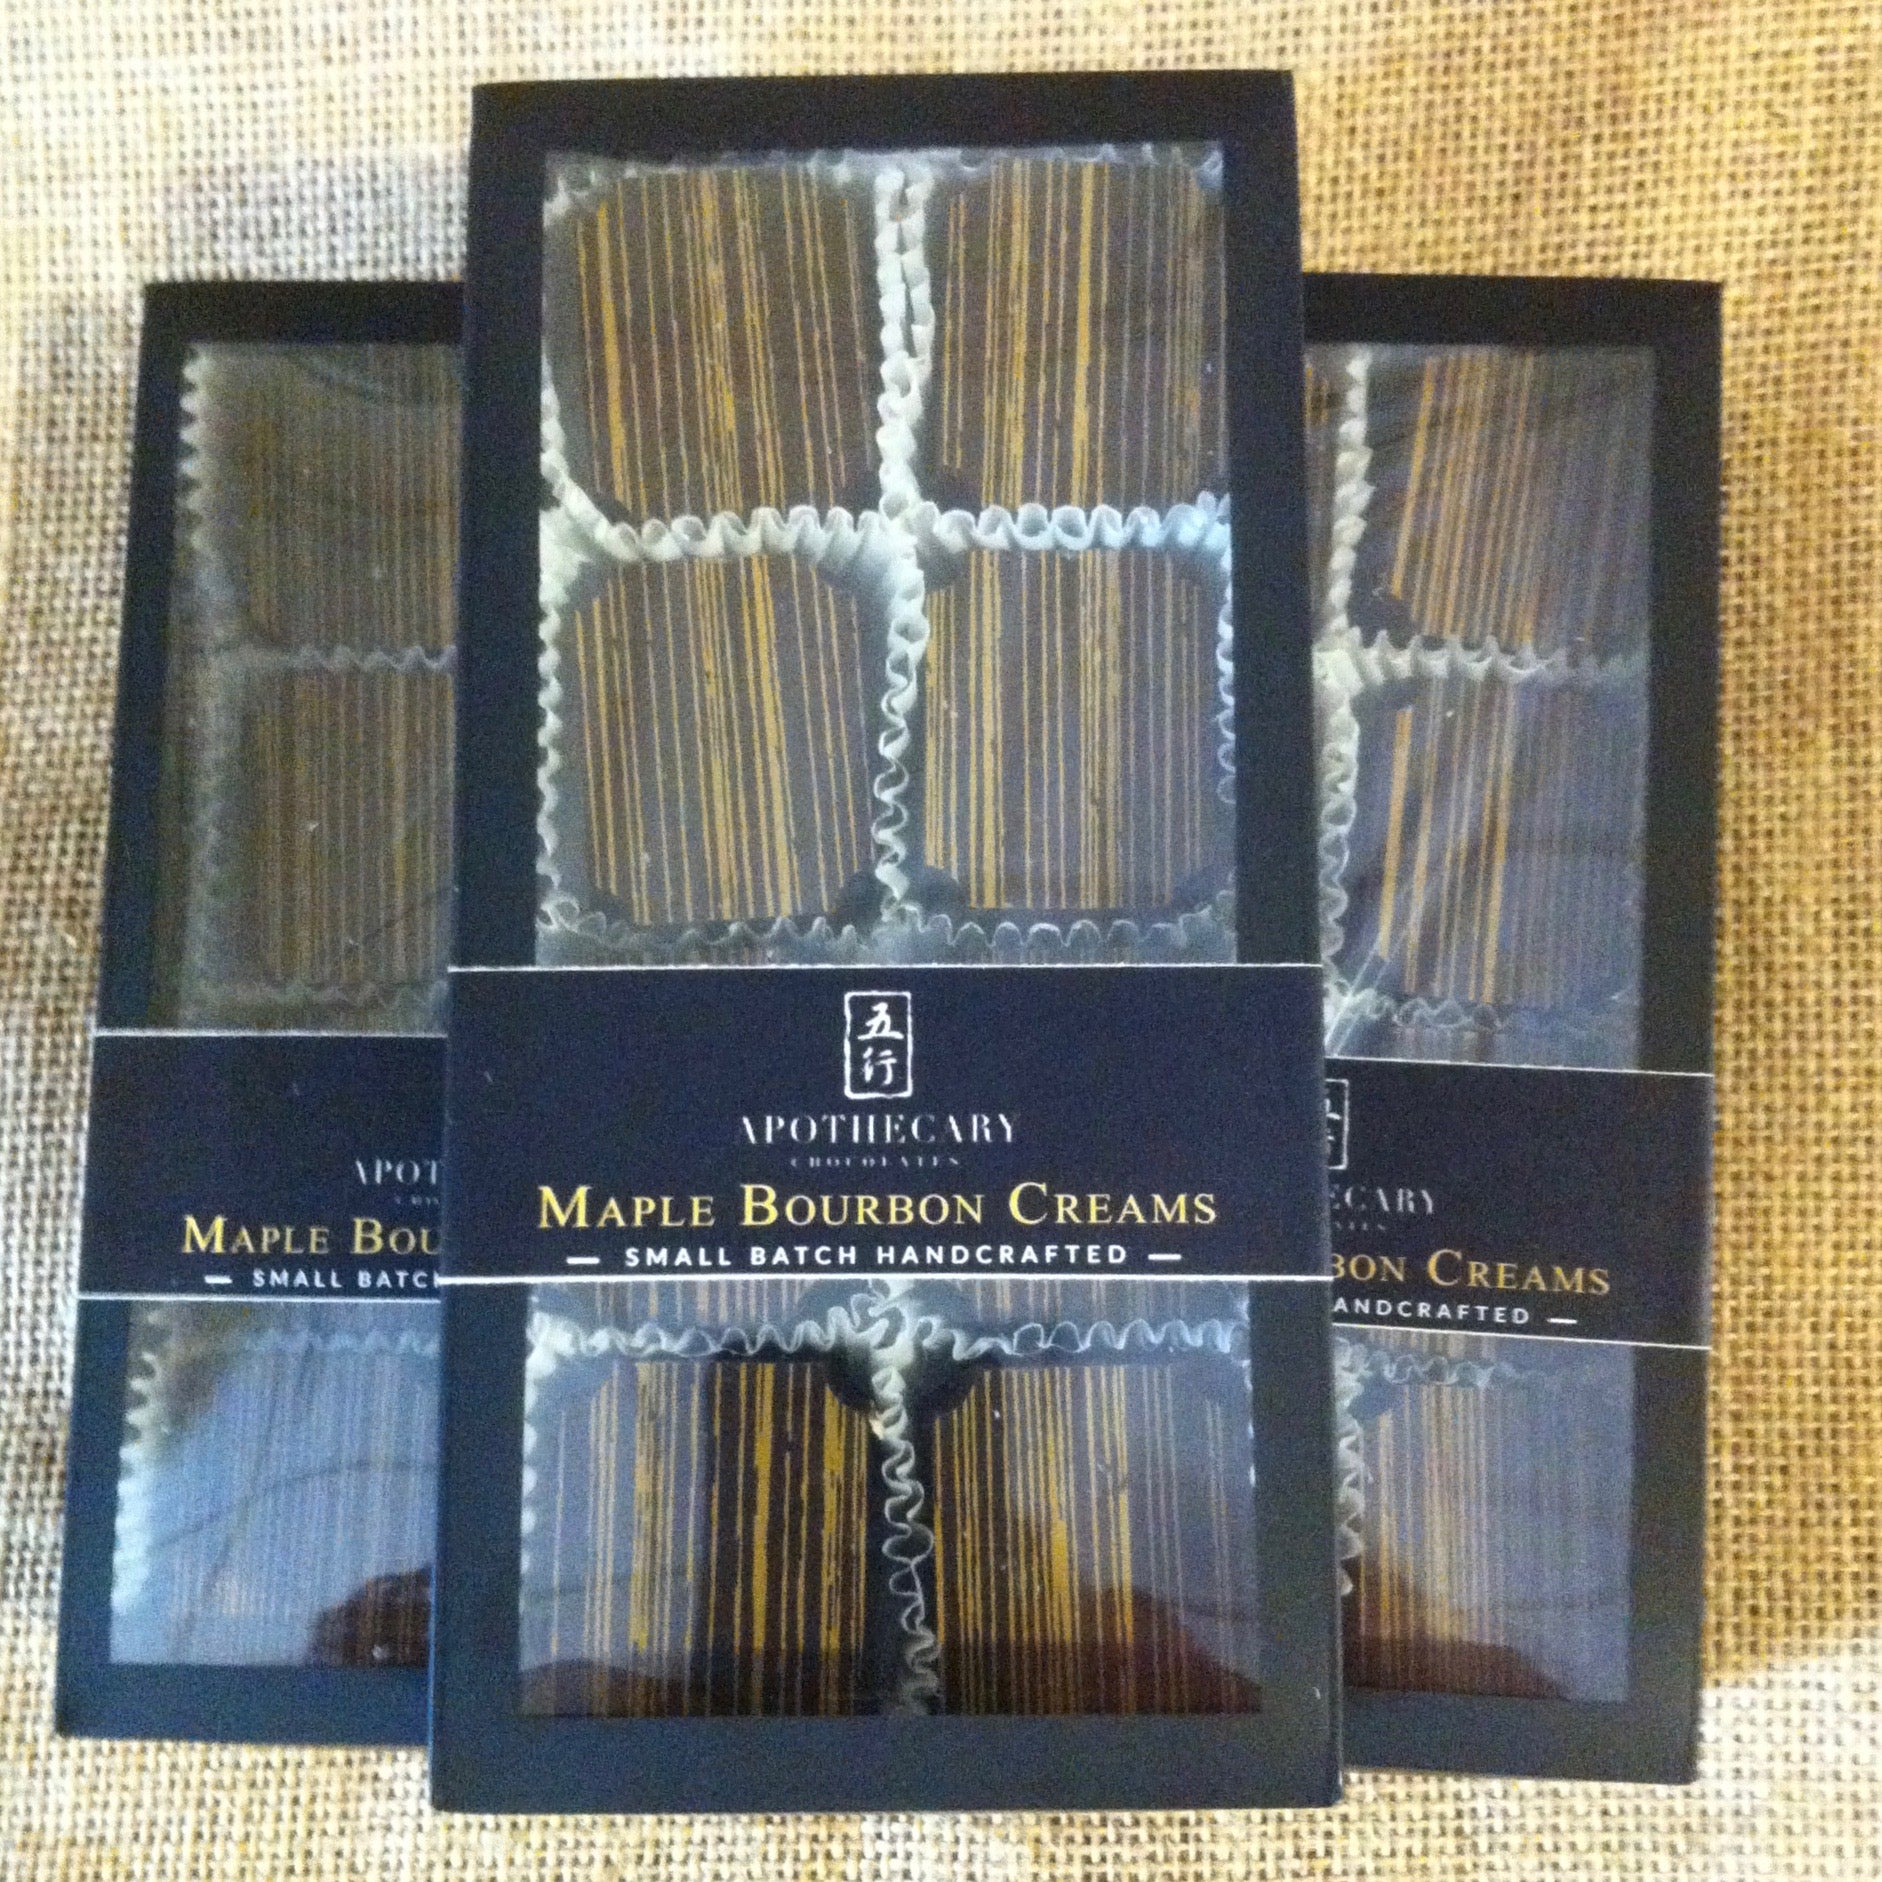 Maple Bourbon Creams